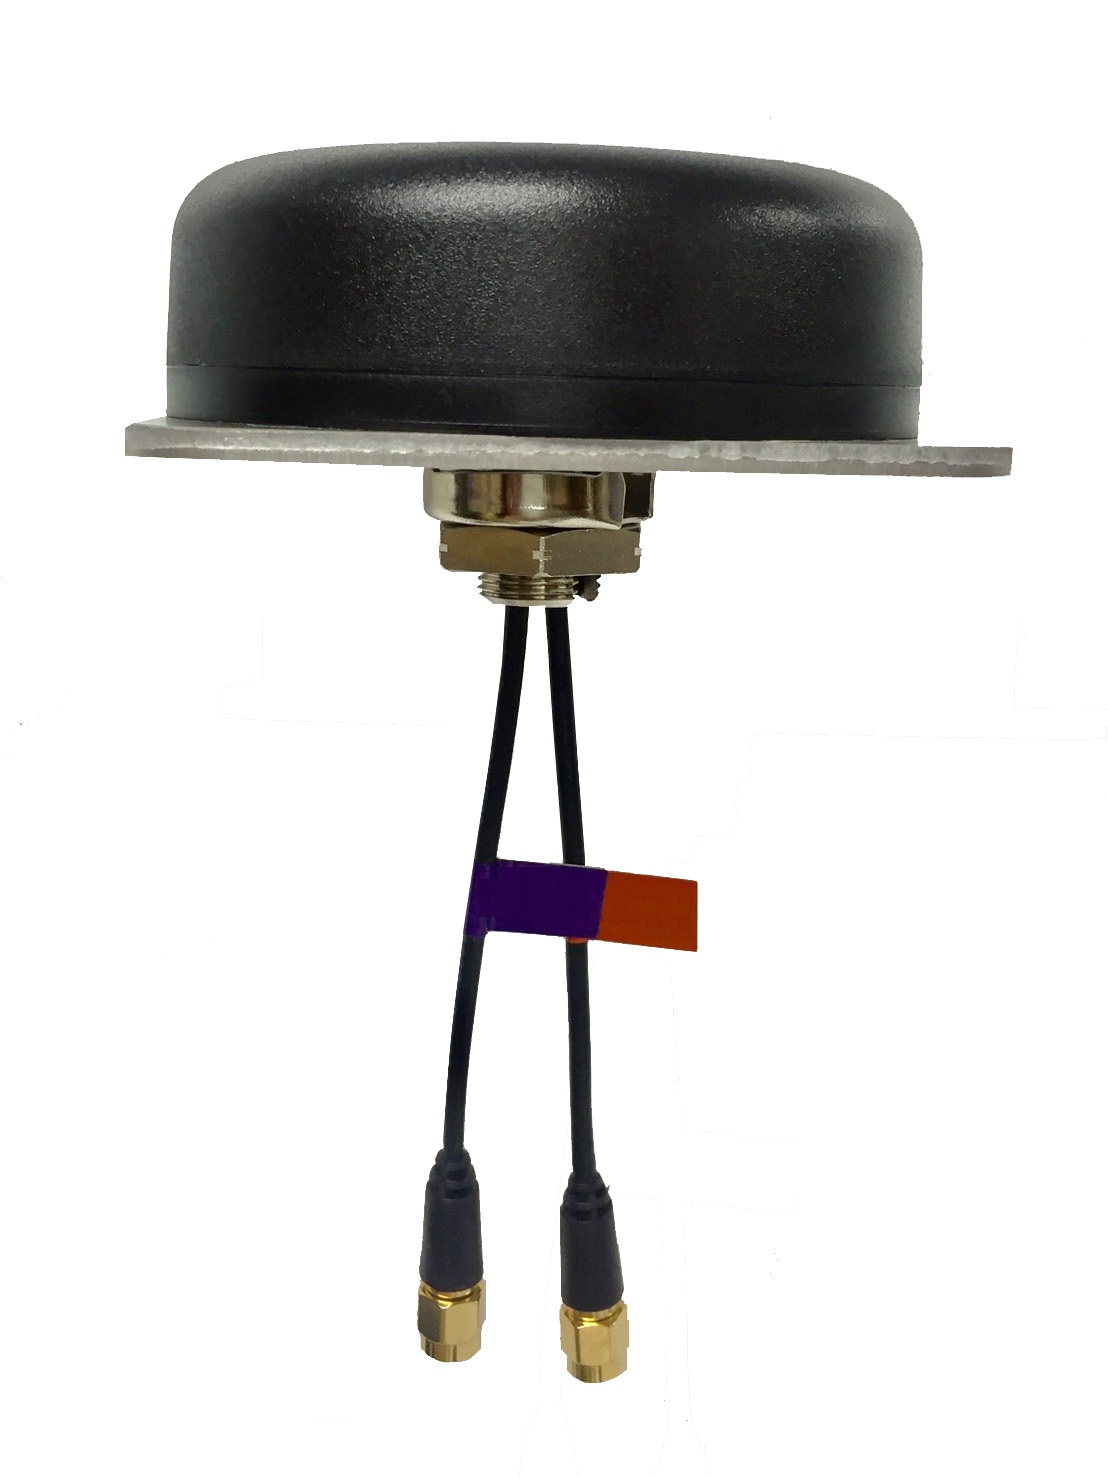 Agricultural / Tractor Combined Antenna for Body Parts made by Chinmore Industry Co., LTD. 竣茂工業有限公司 - MatchSupplier.com